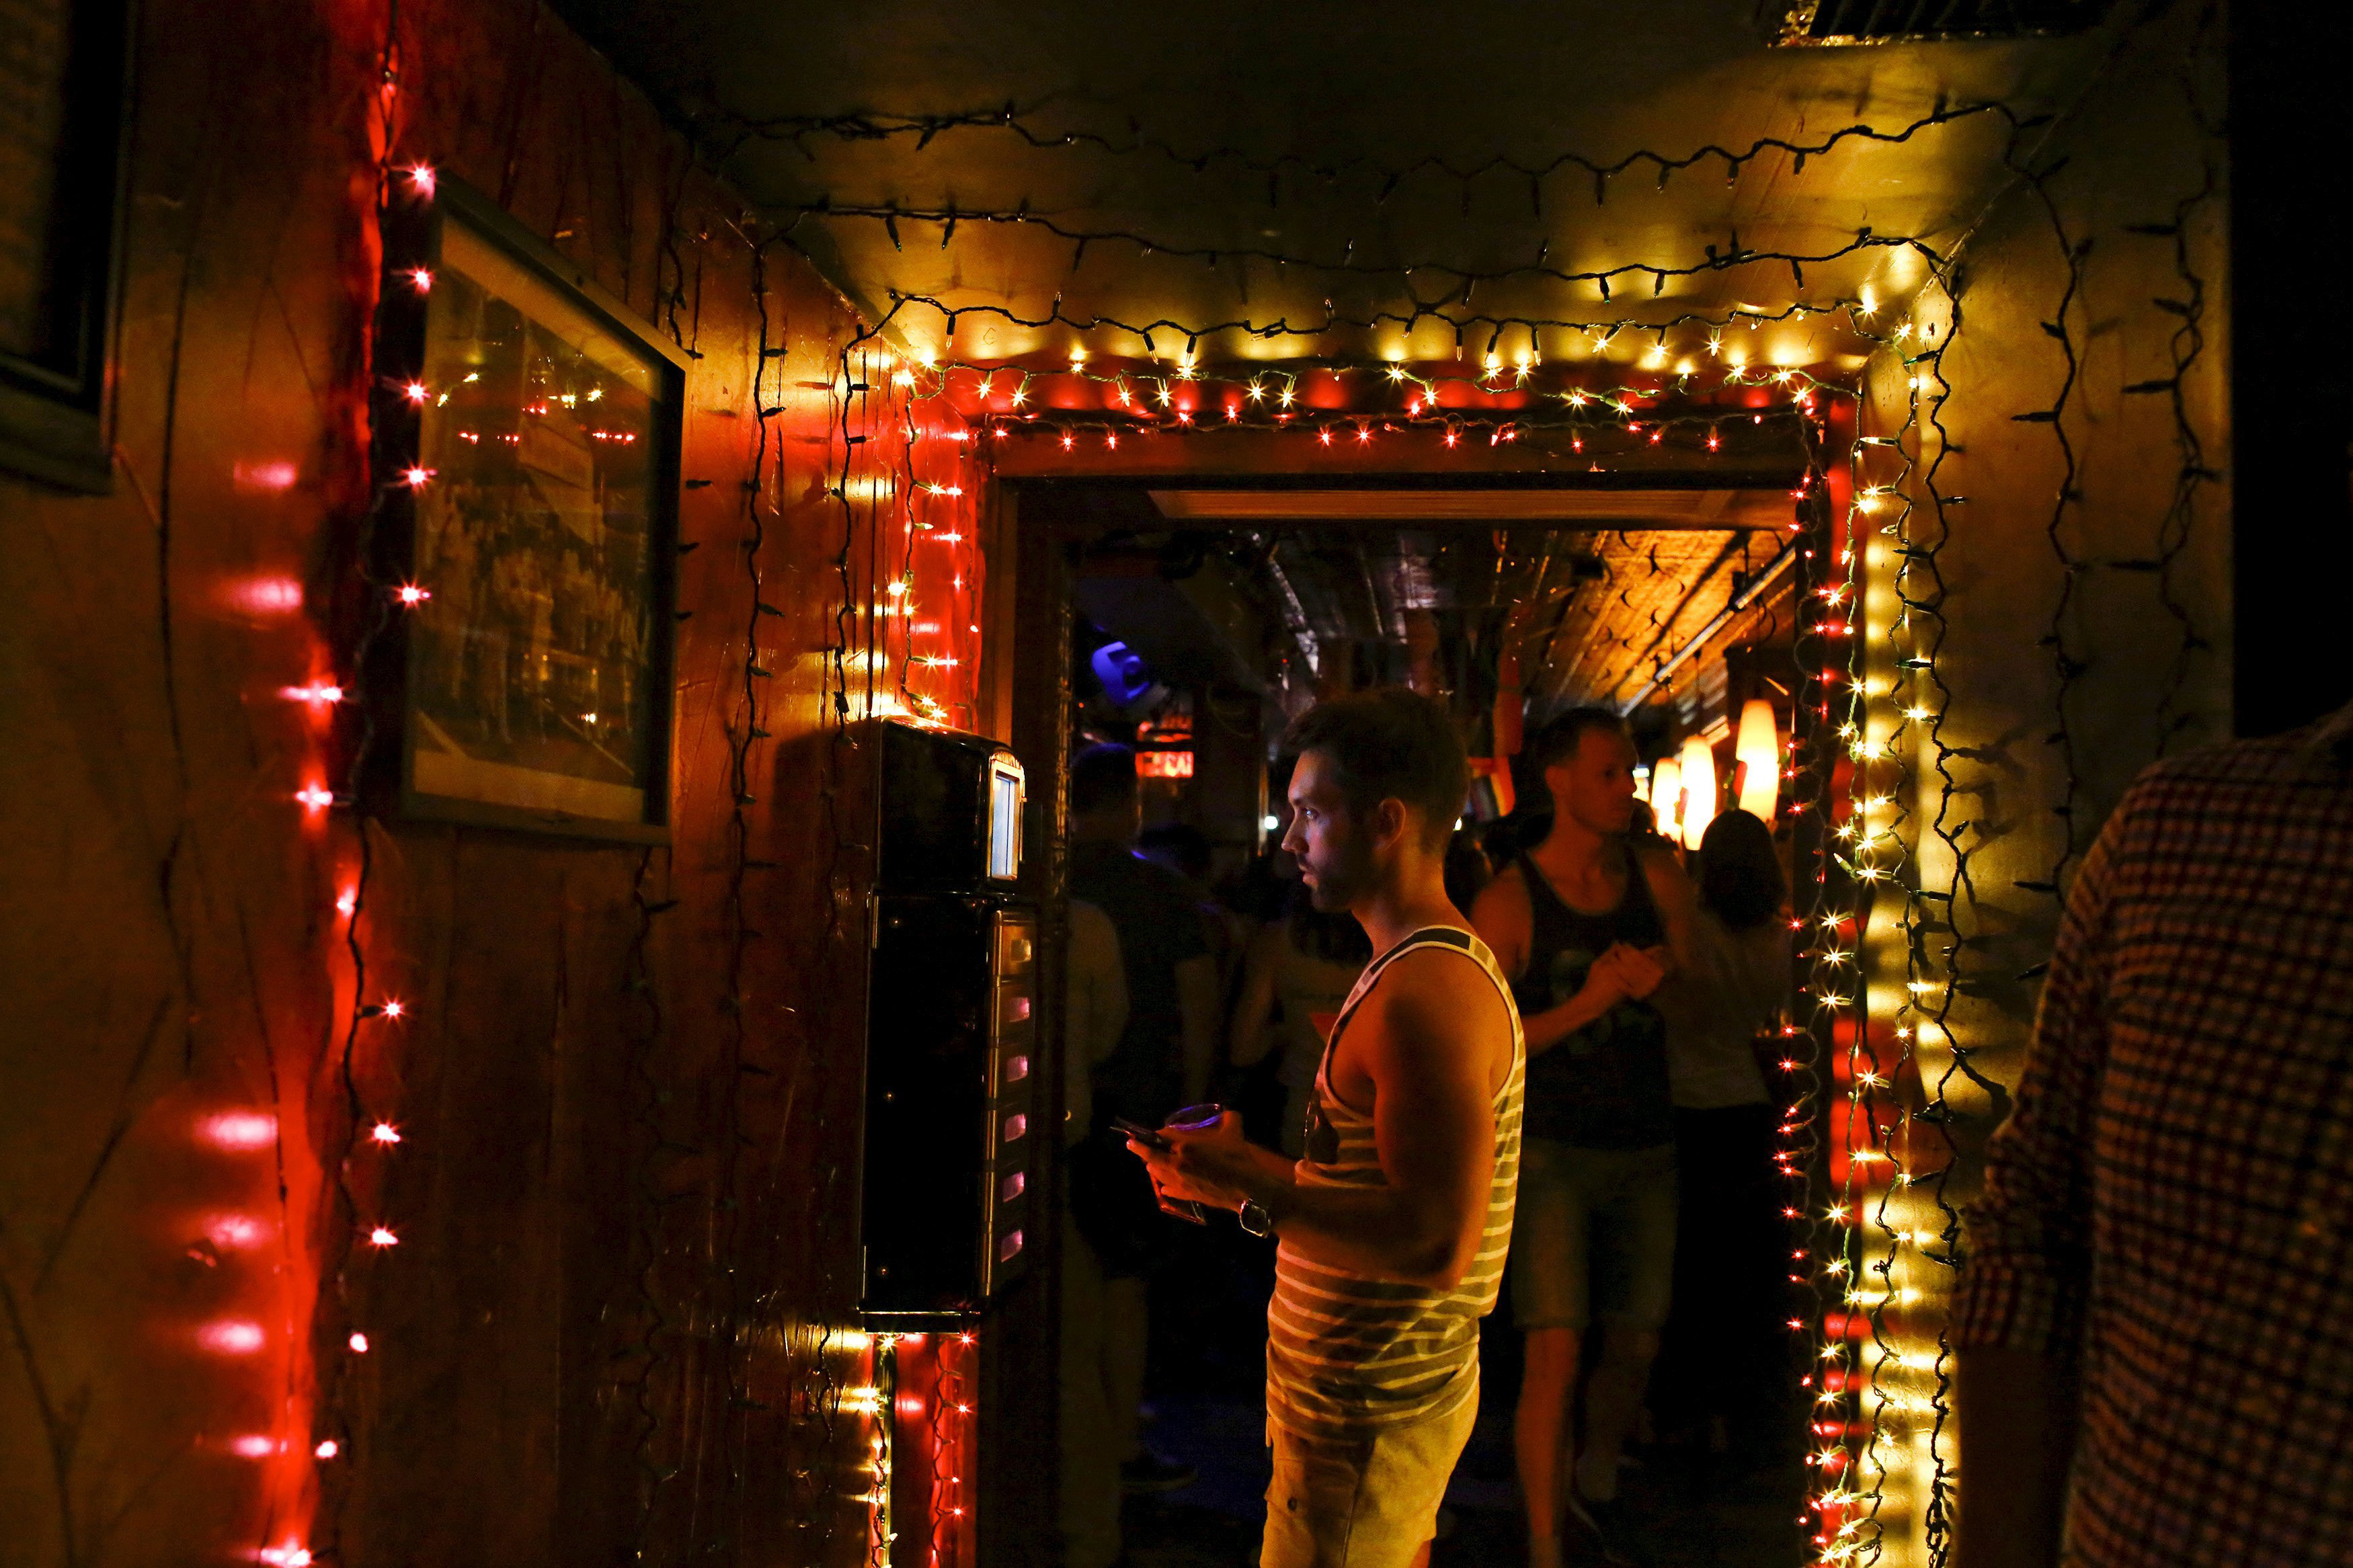 A man plays music as people celebrate inside the Stonewall Inn in the West Village neighborhood of New York, June 26, 2015.